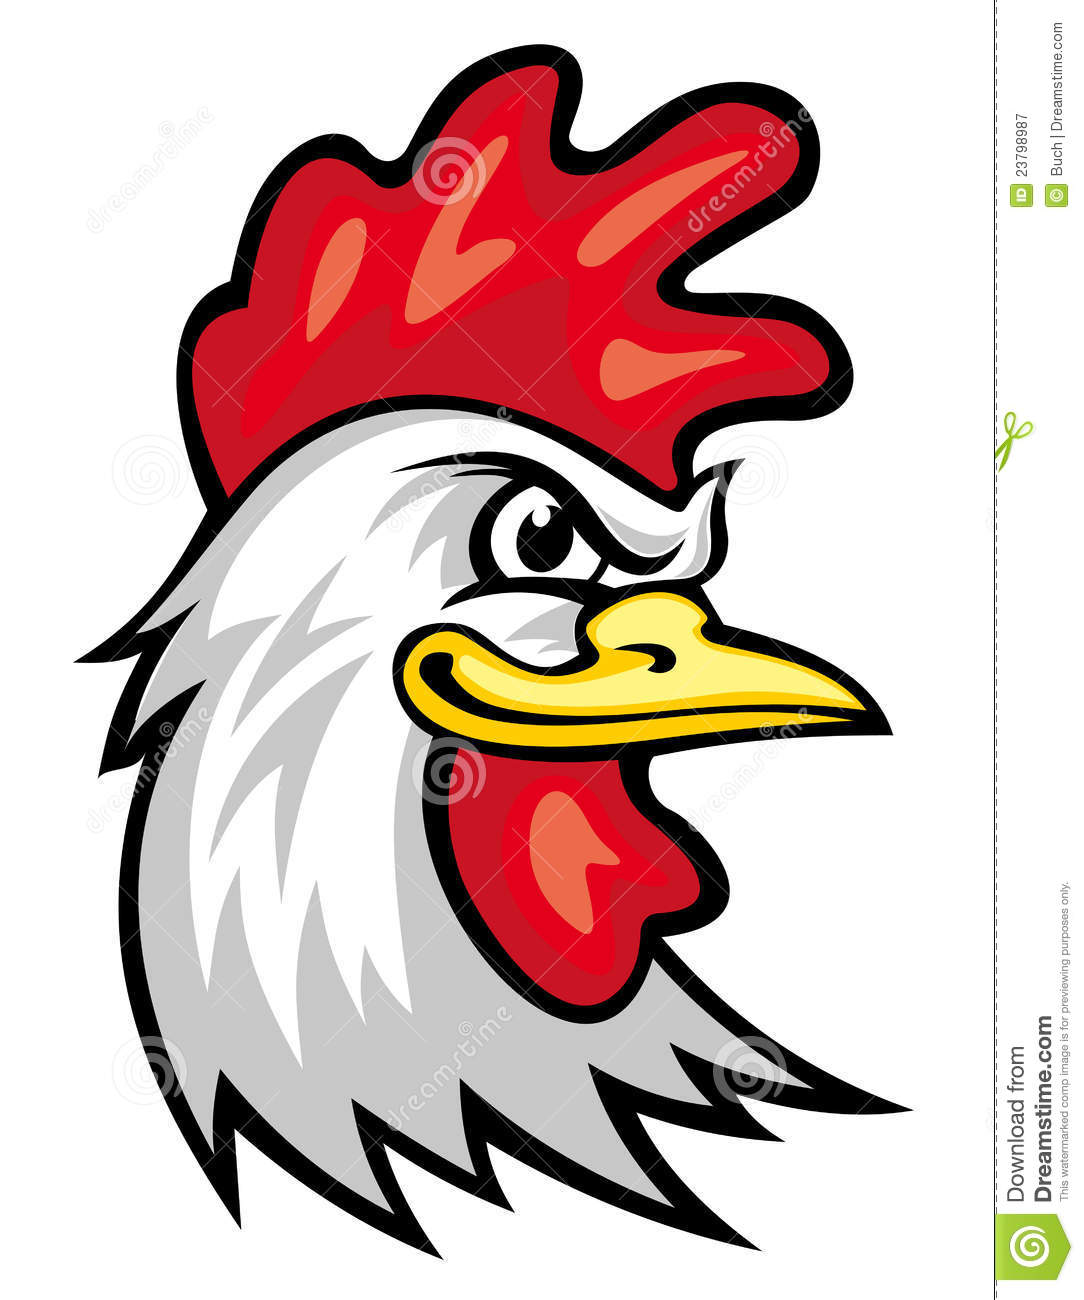 rooster mascot stock vector illustration of crest